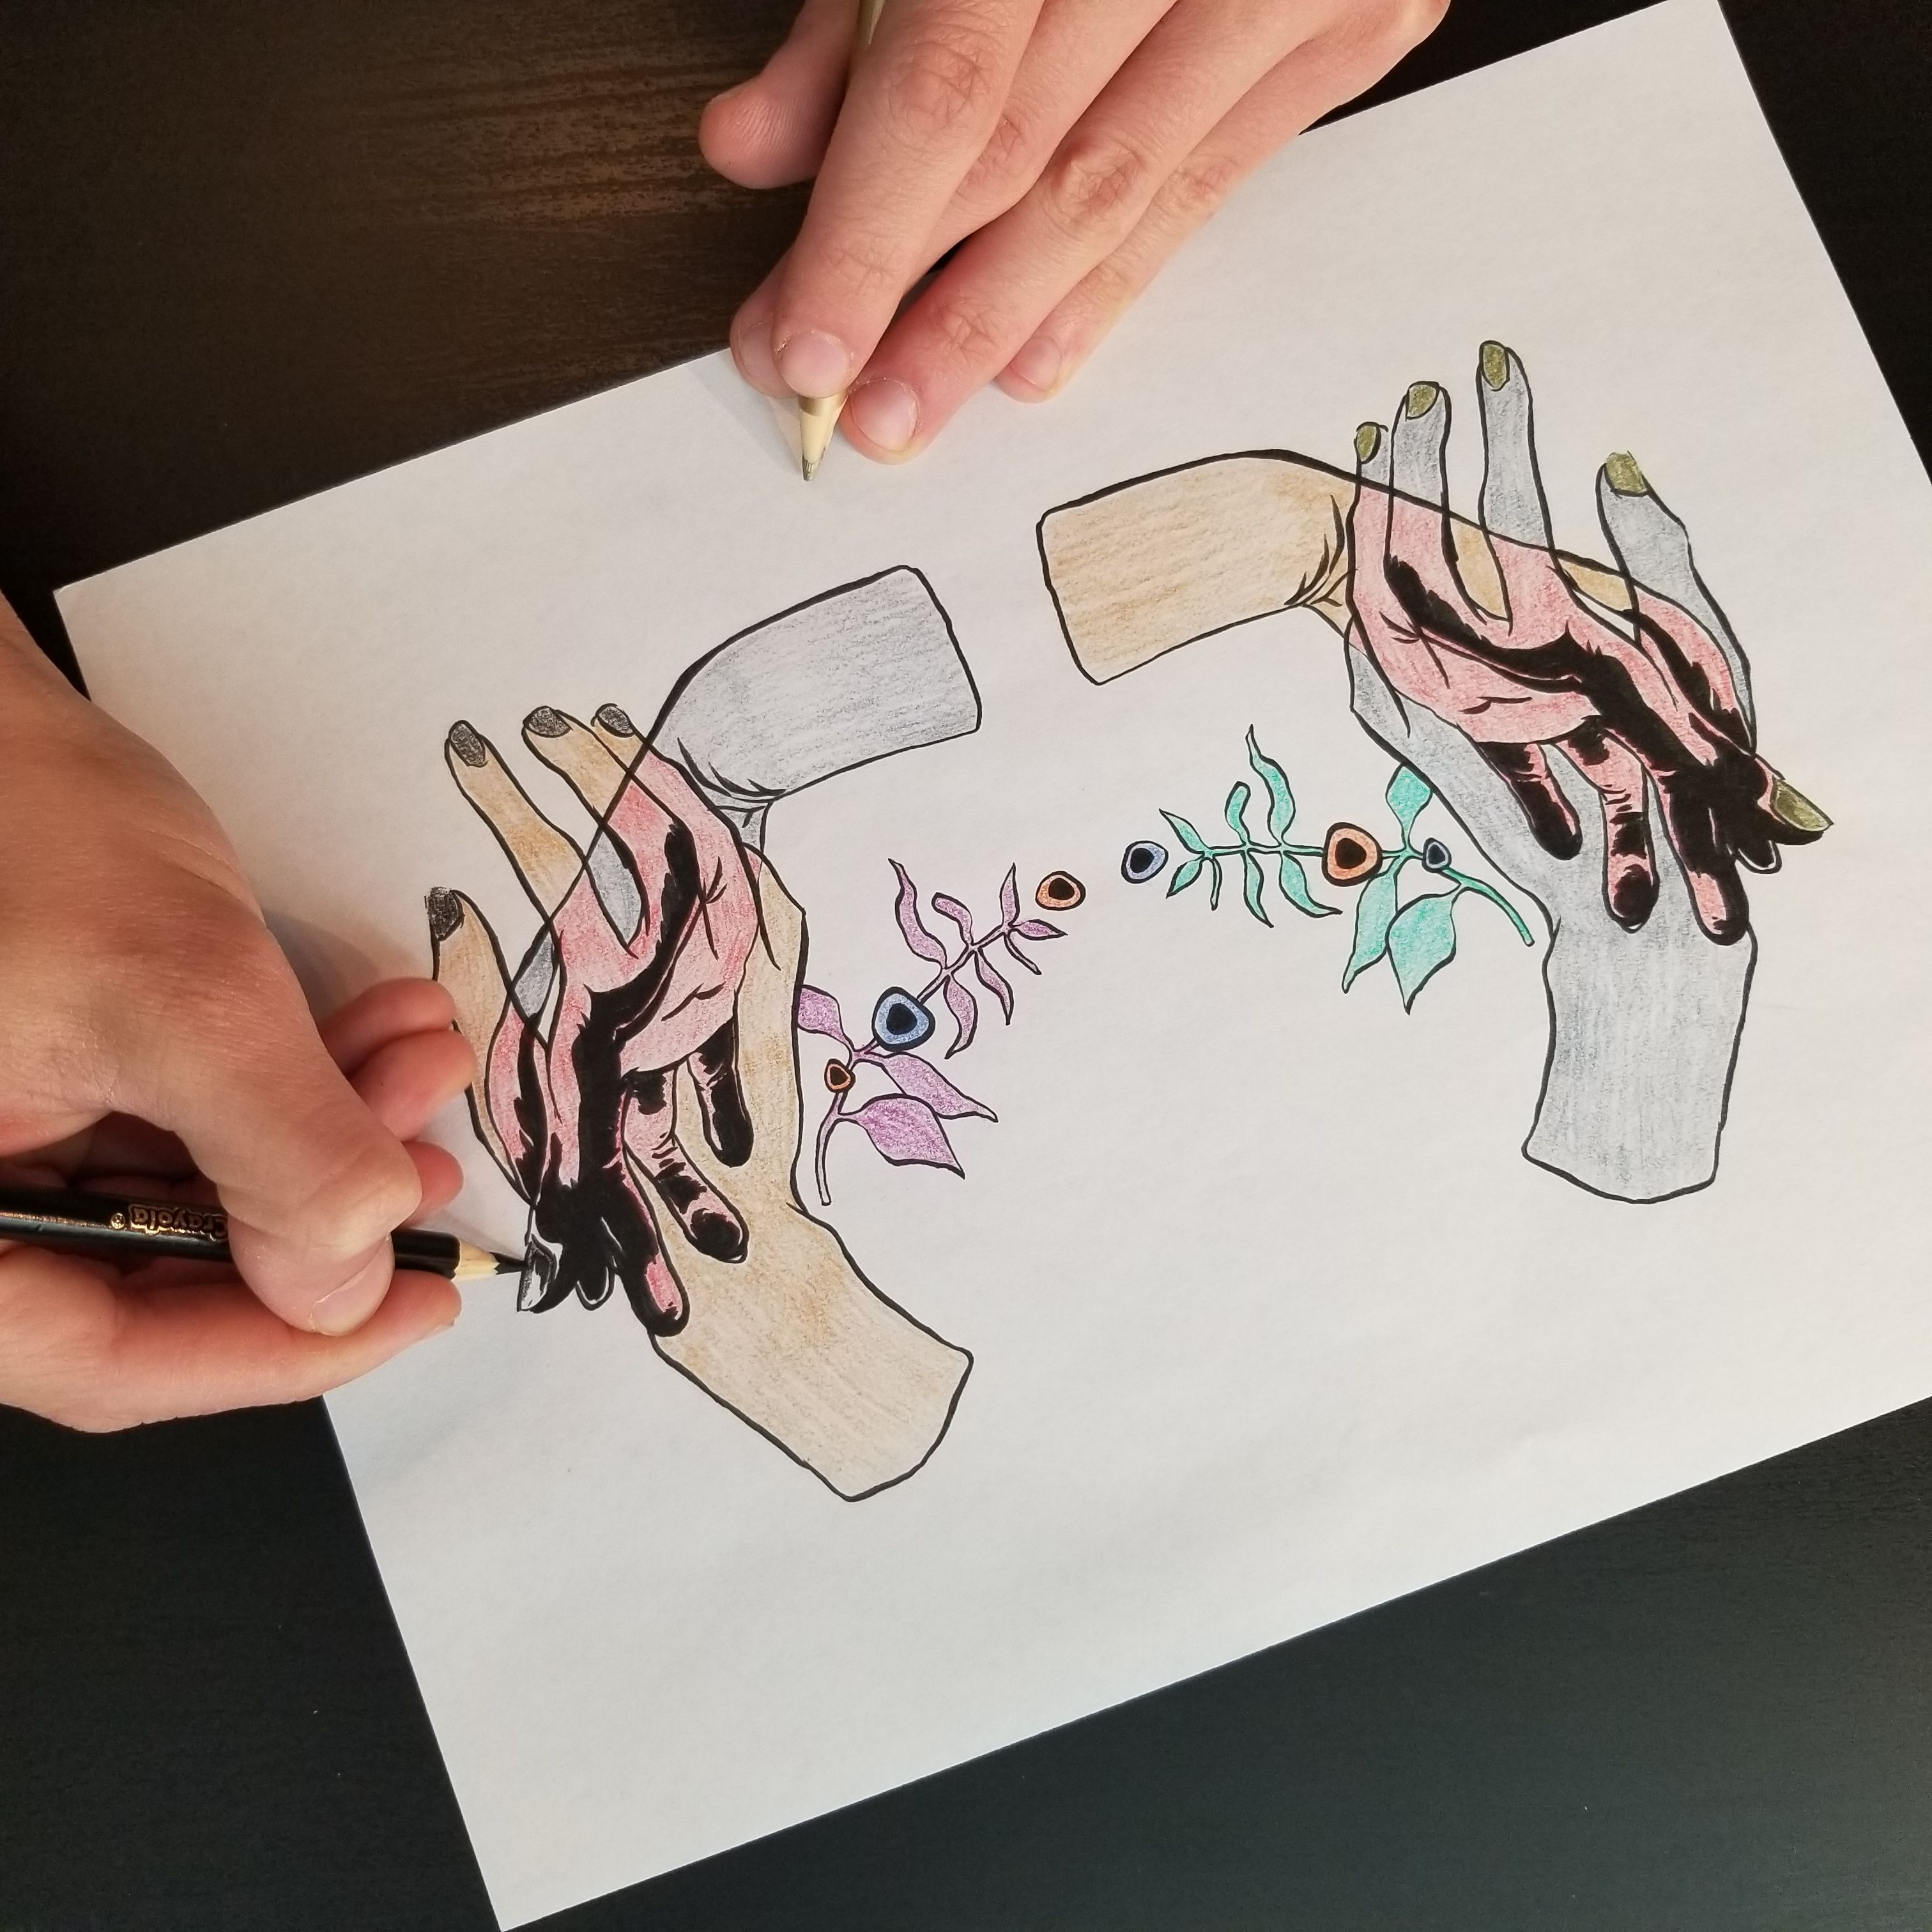 Get A Free Ambidextrous Coloring Sheet To Help Support